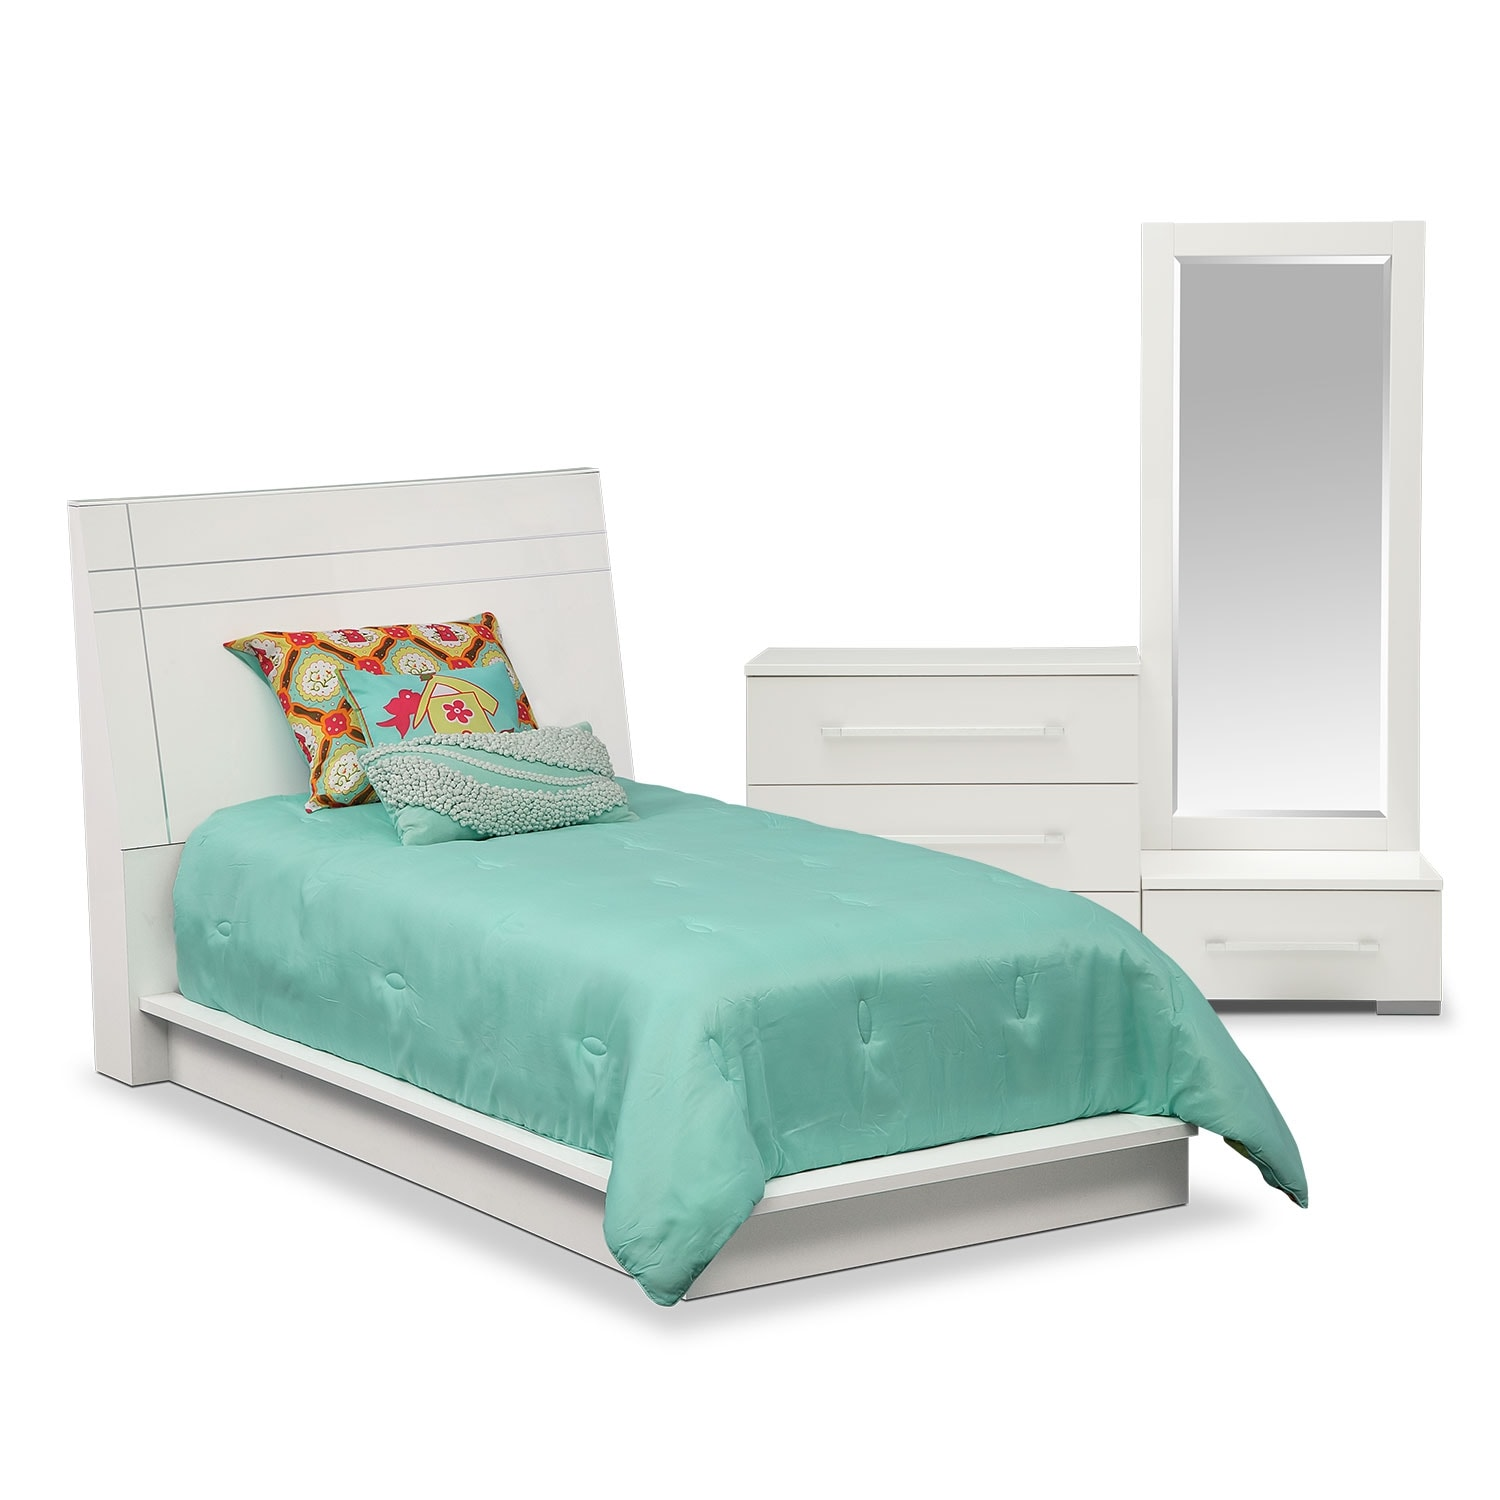 Dimora 5-Piece Twin Panel Bedroom Set - White